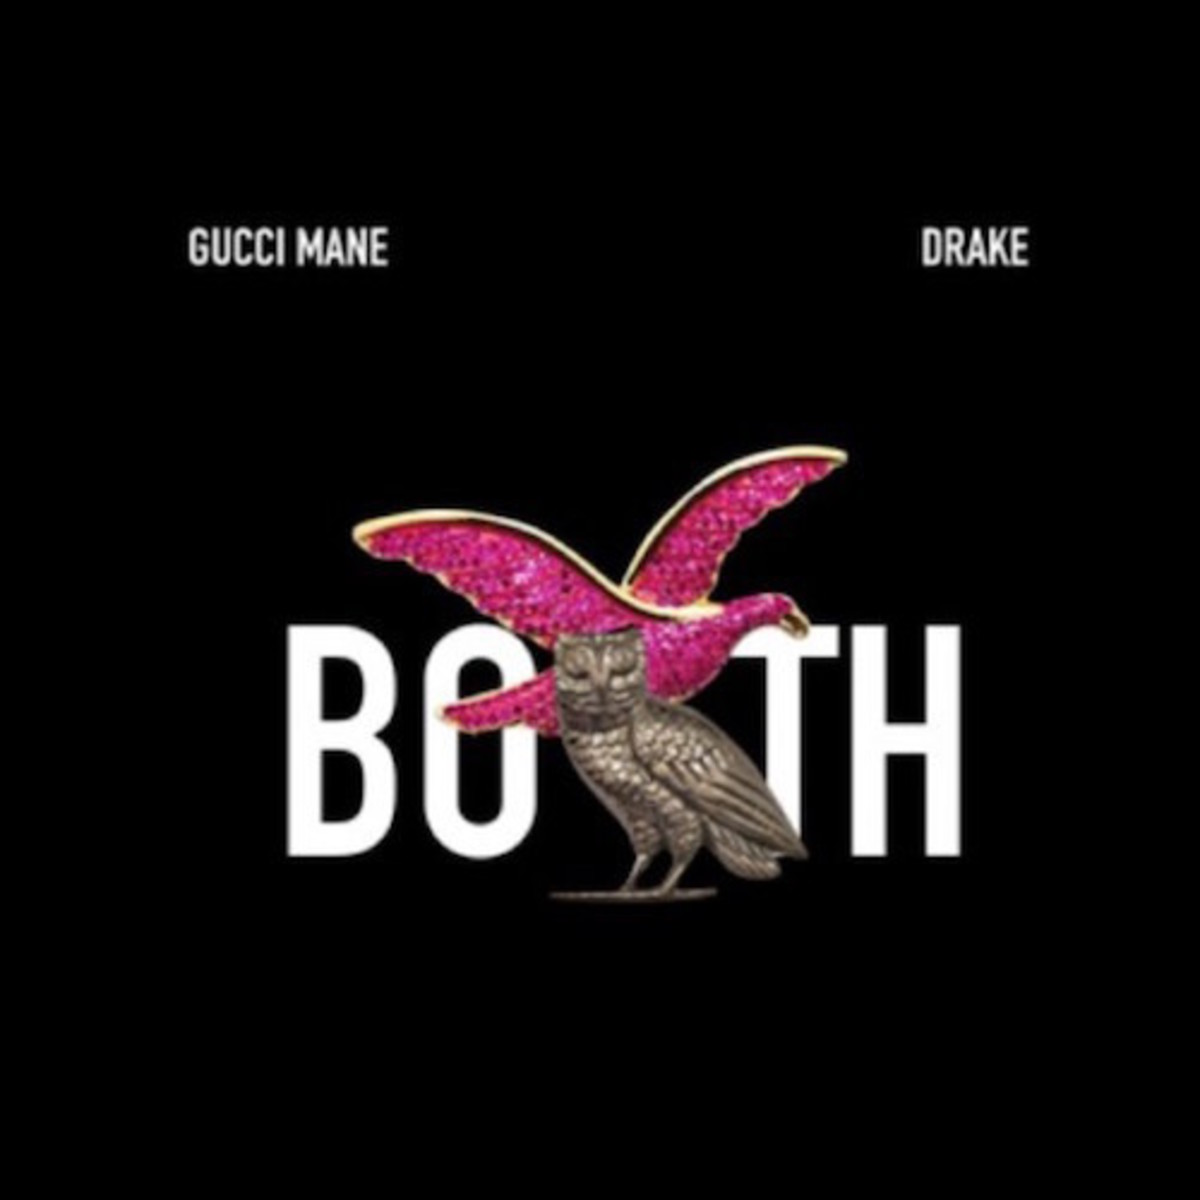 gucci-mane-both.jpg